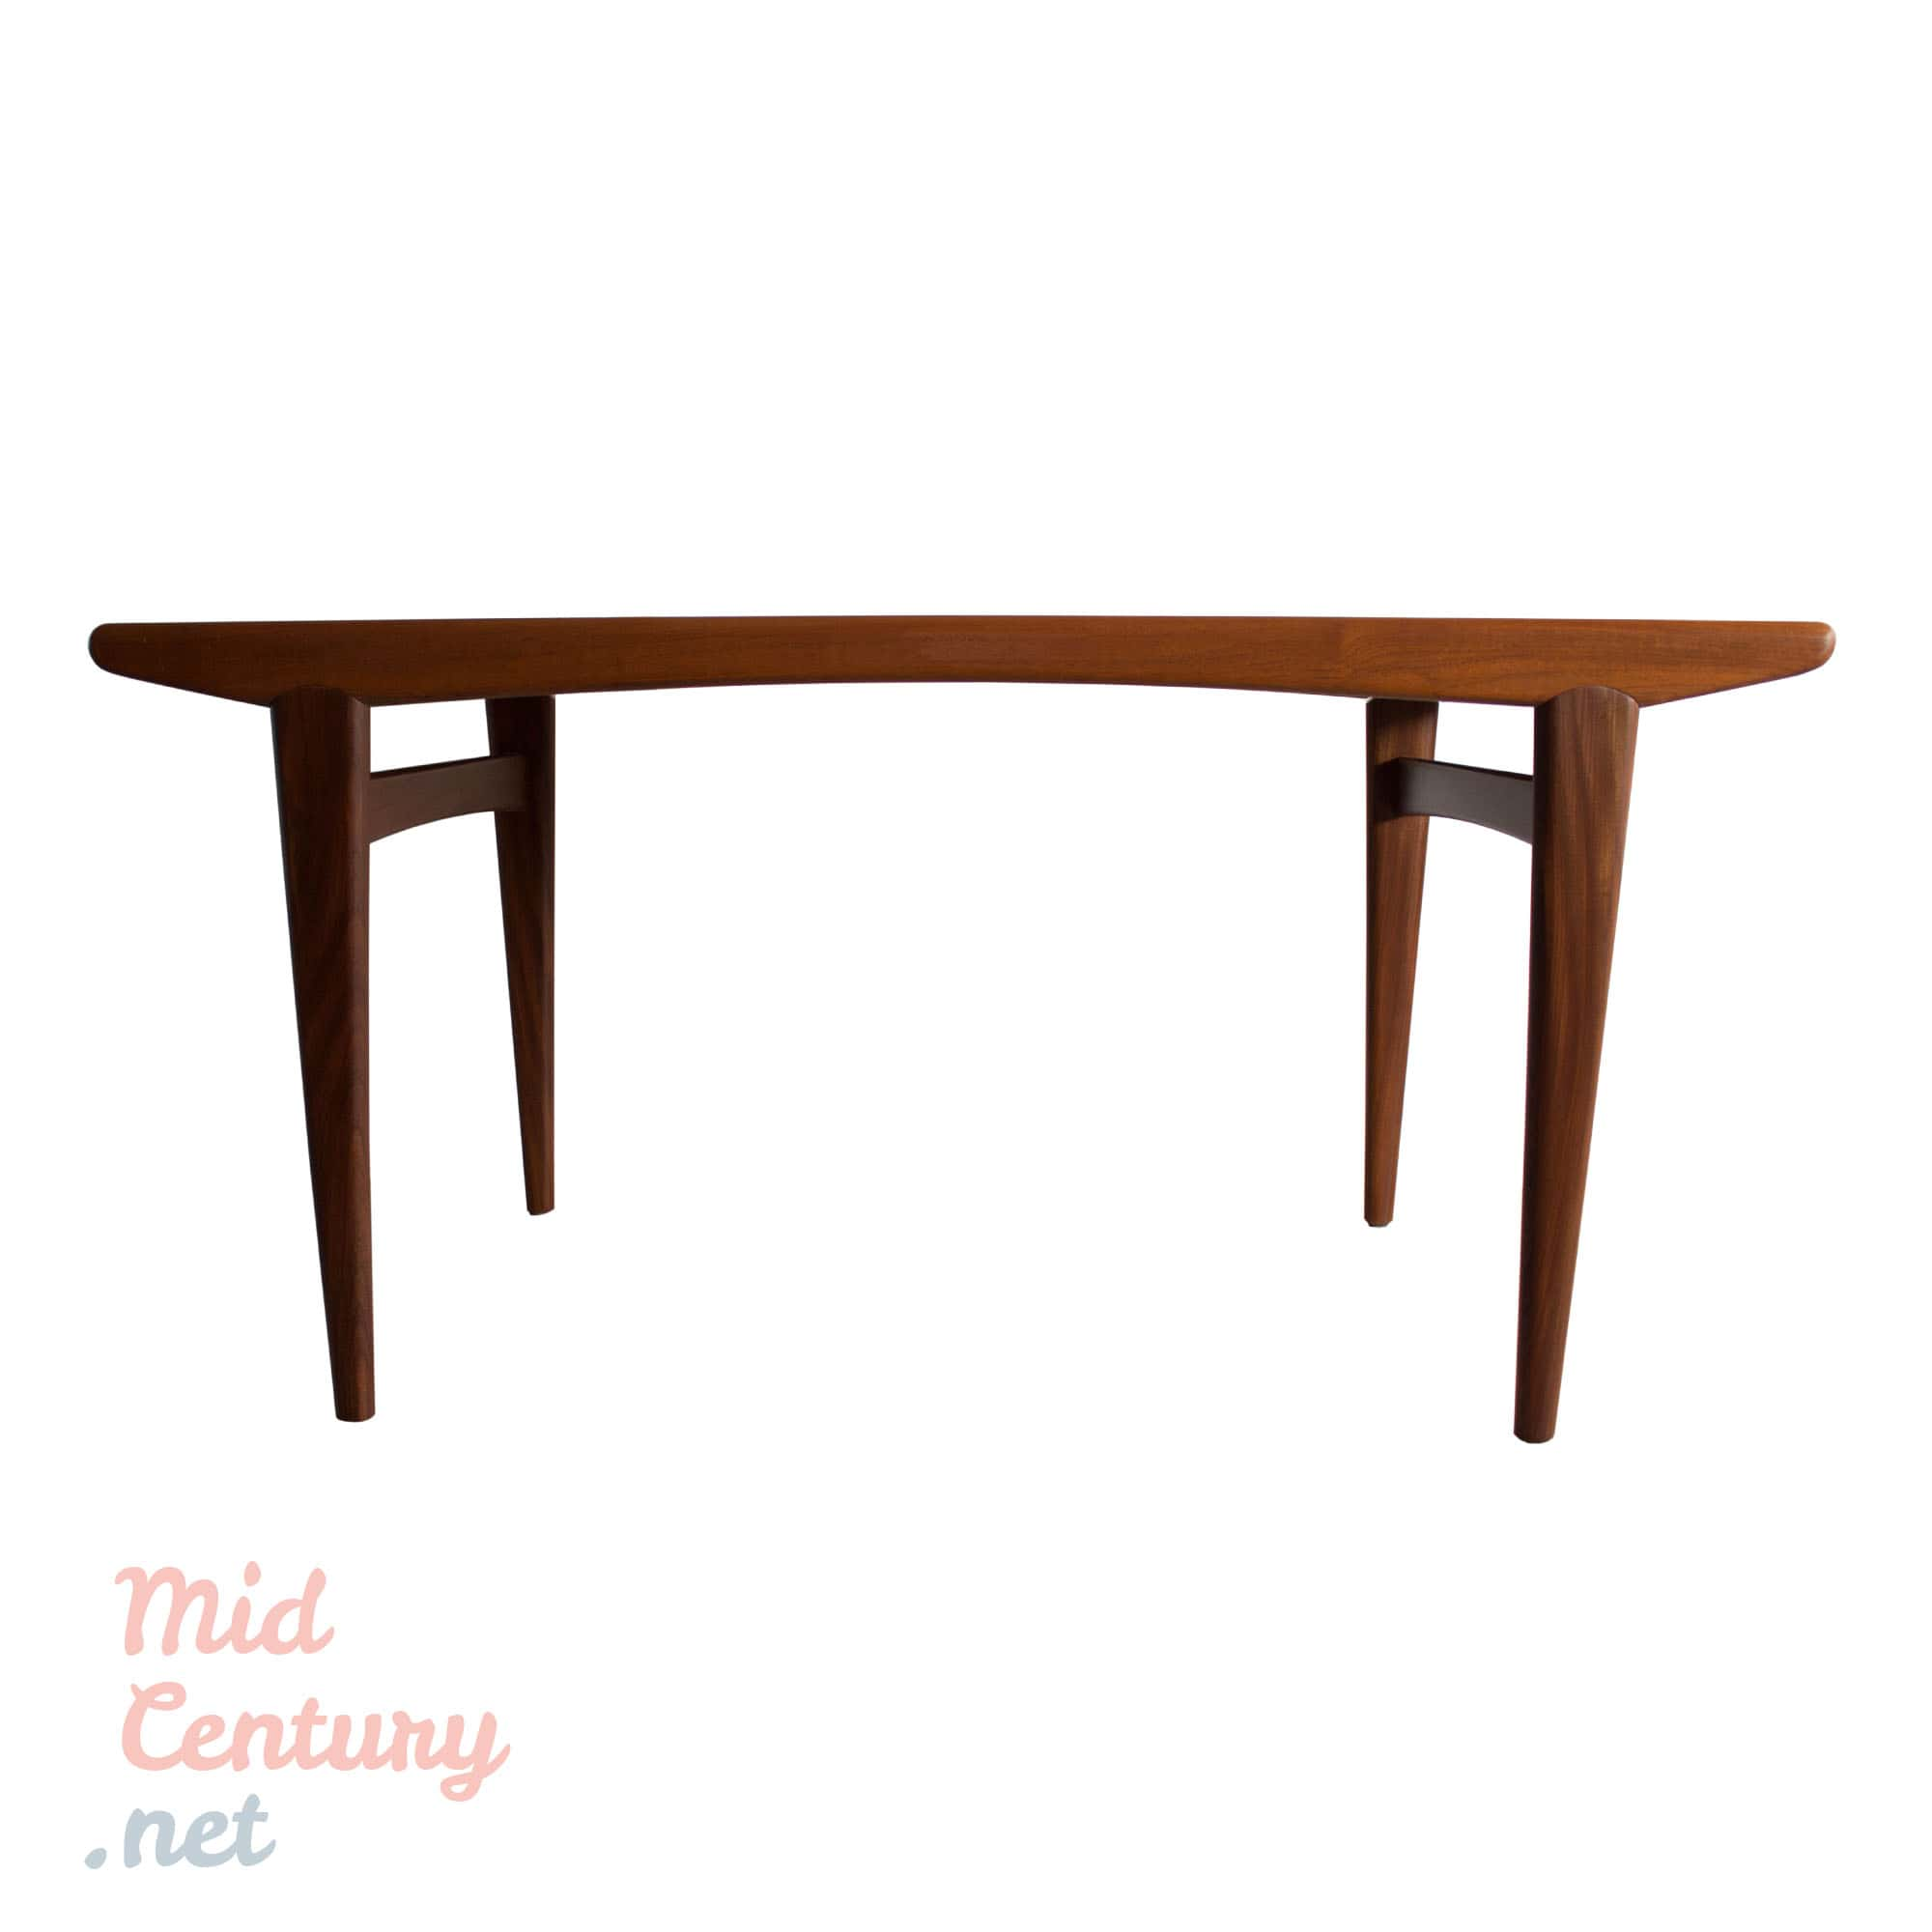 Beautiful extendable teak dining table made in the 1960s